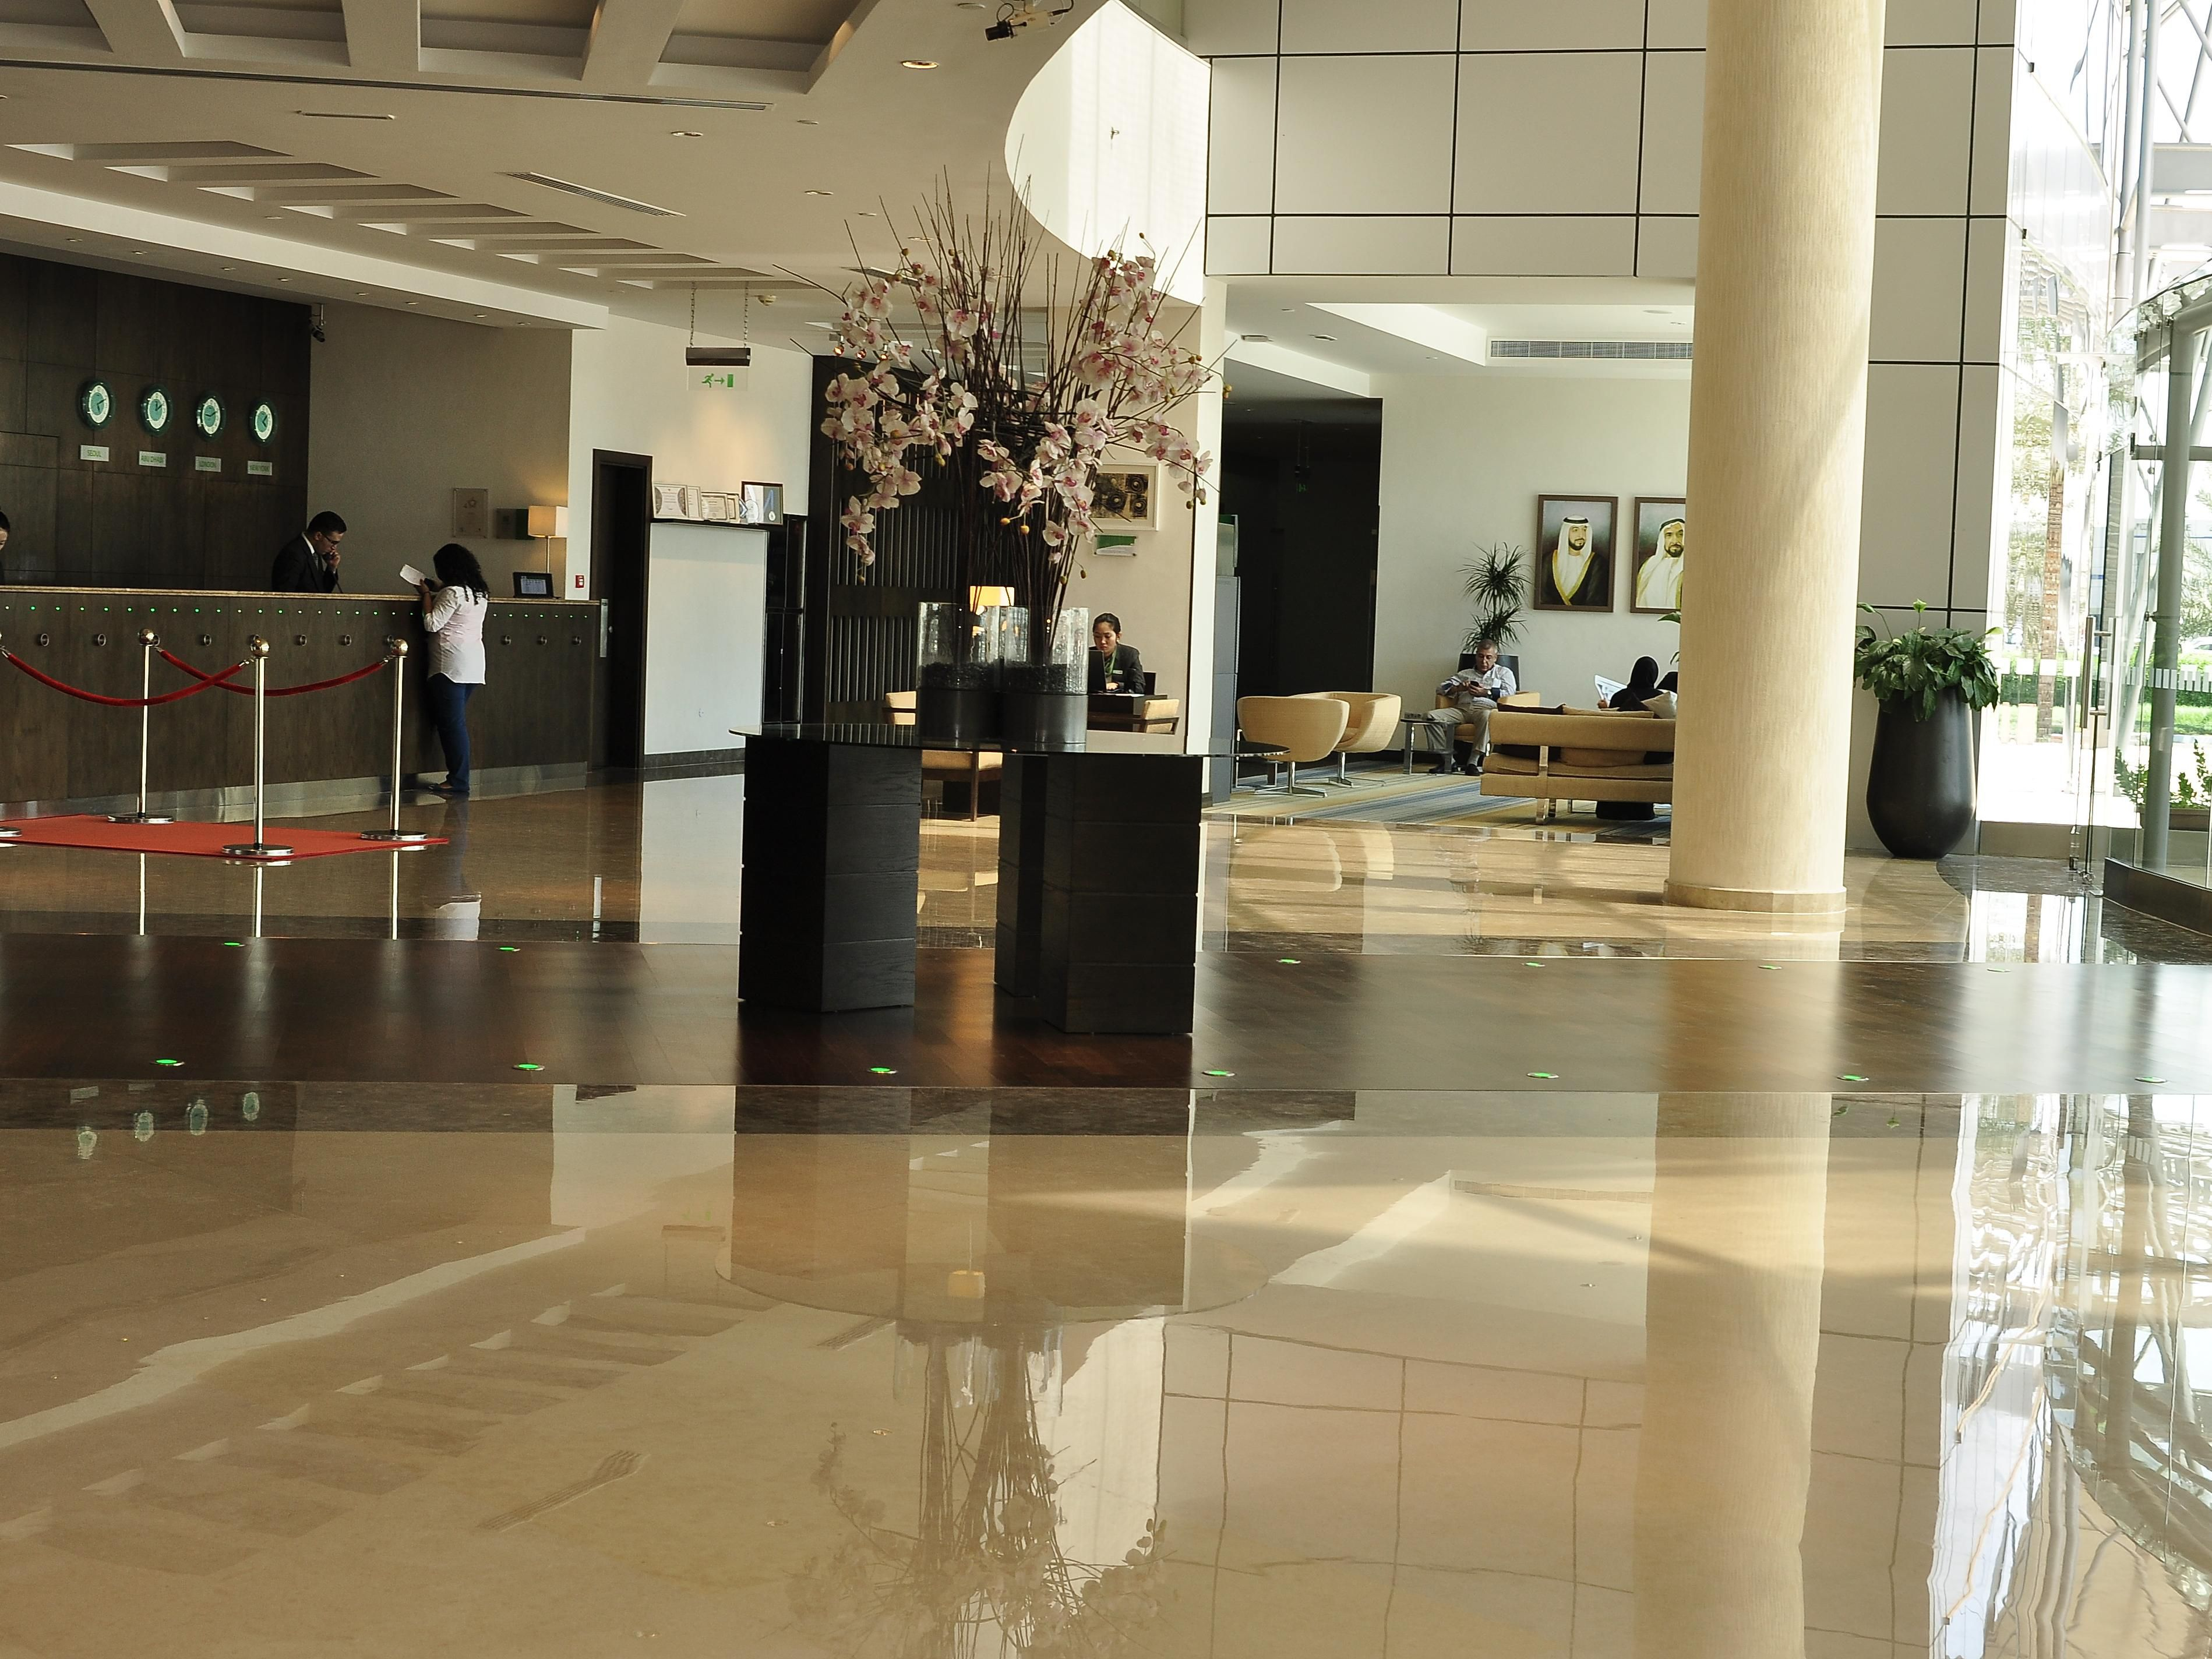 A warm welcome awaits you from the moment you step into our lobby